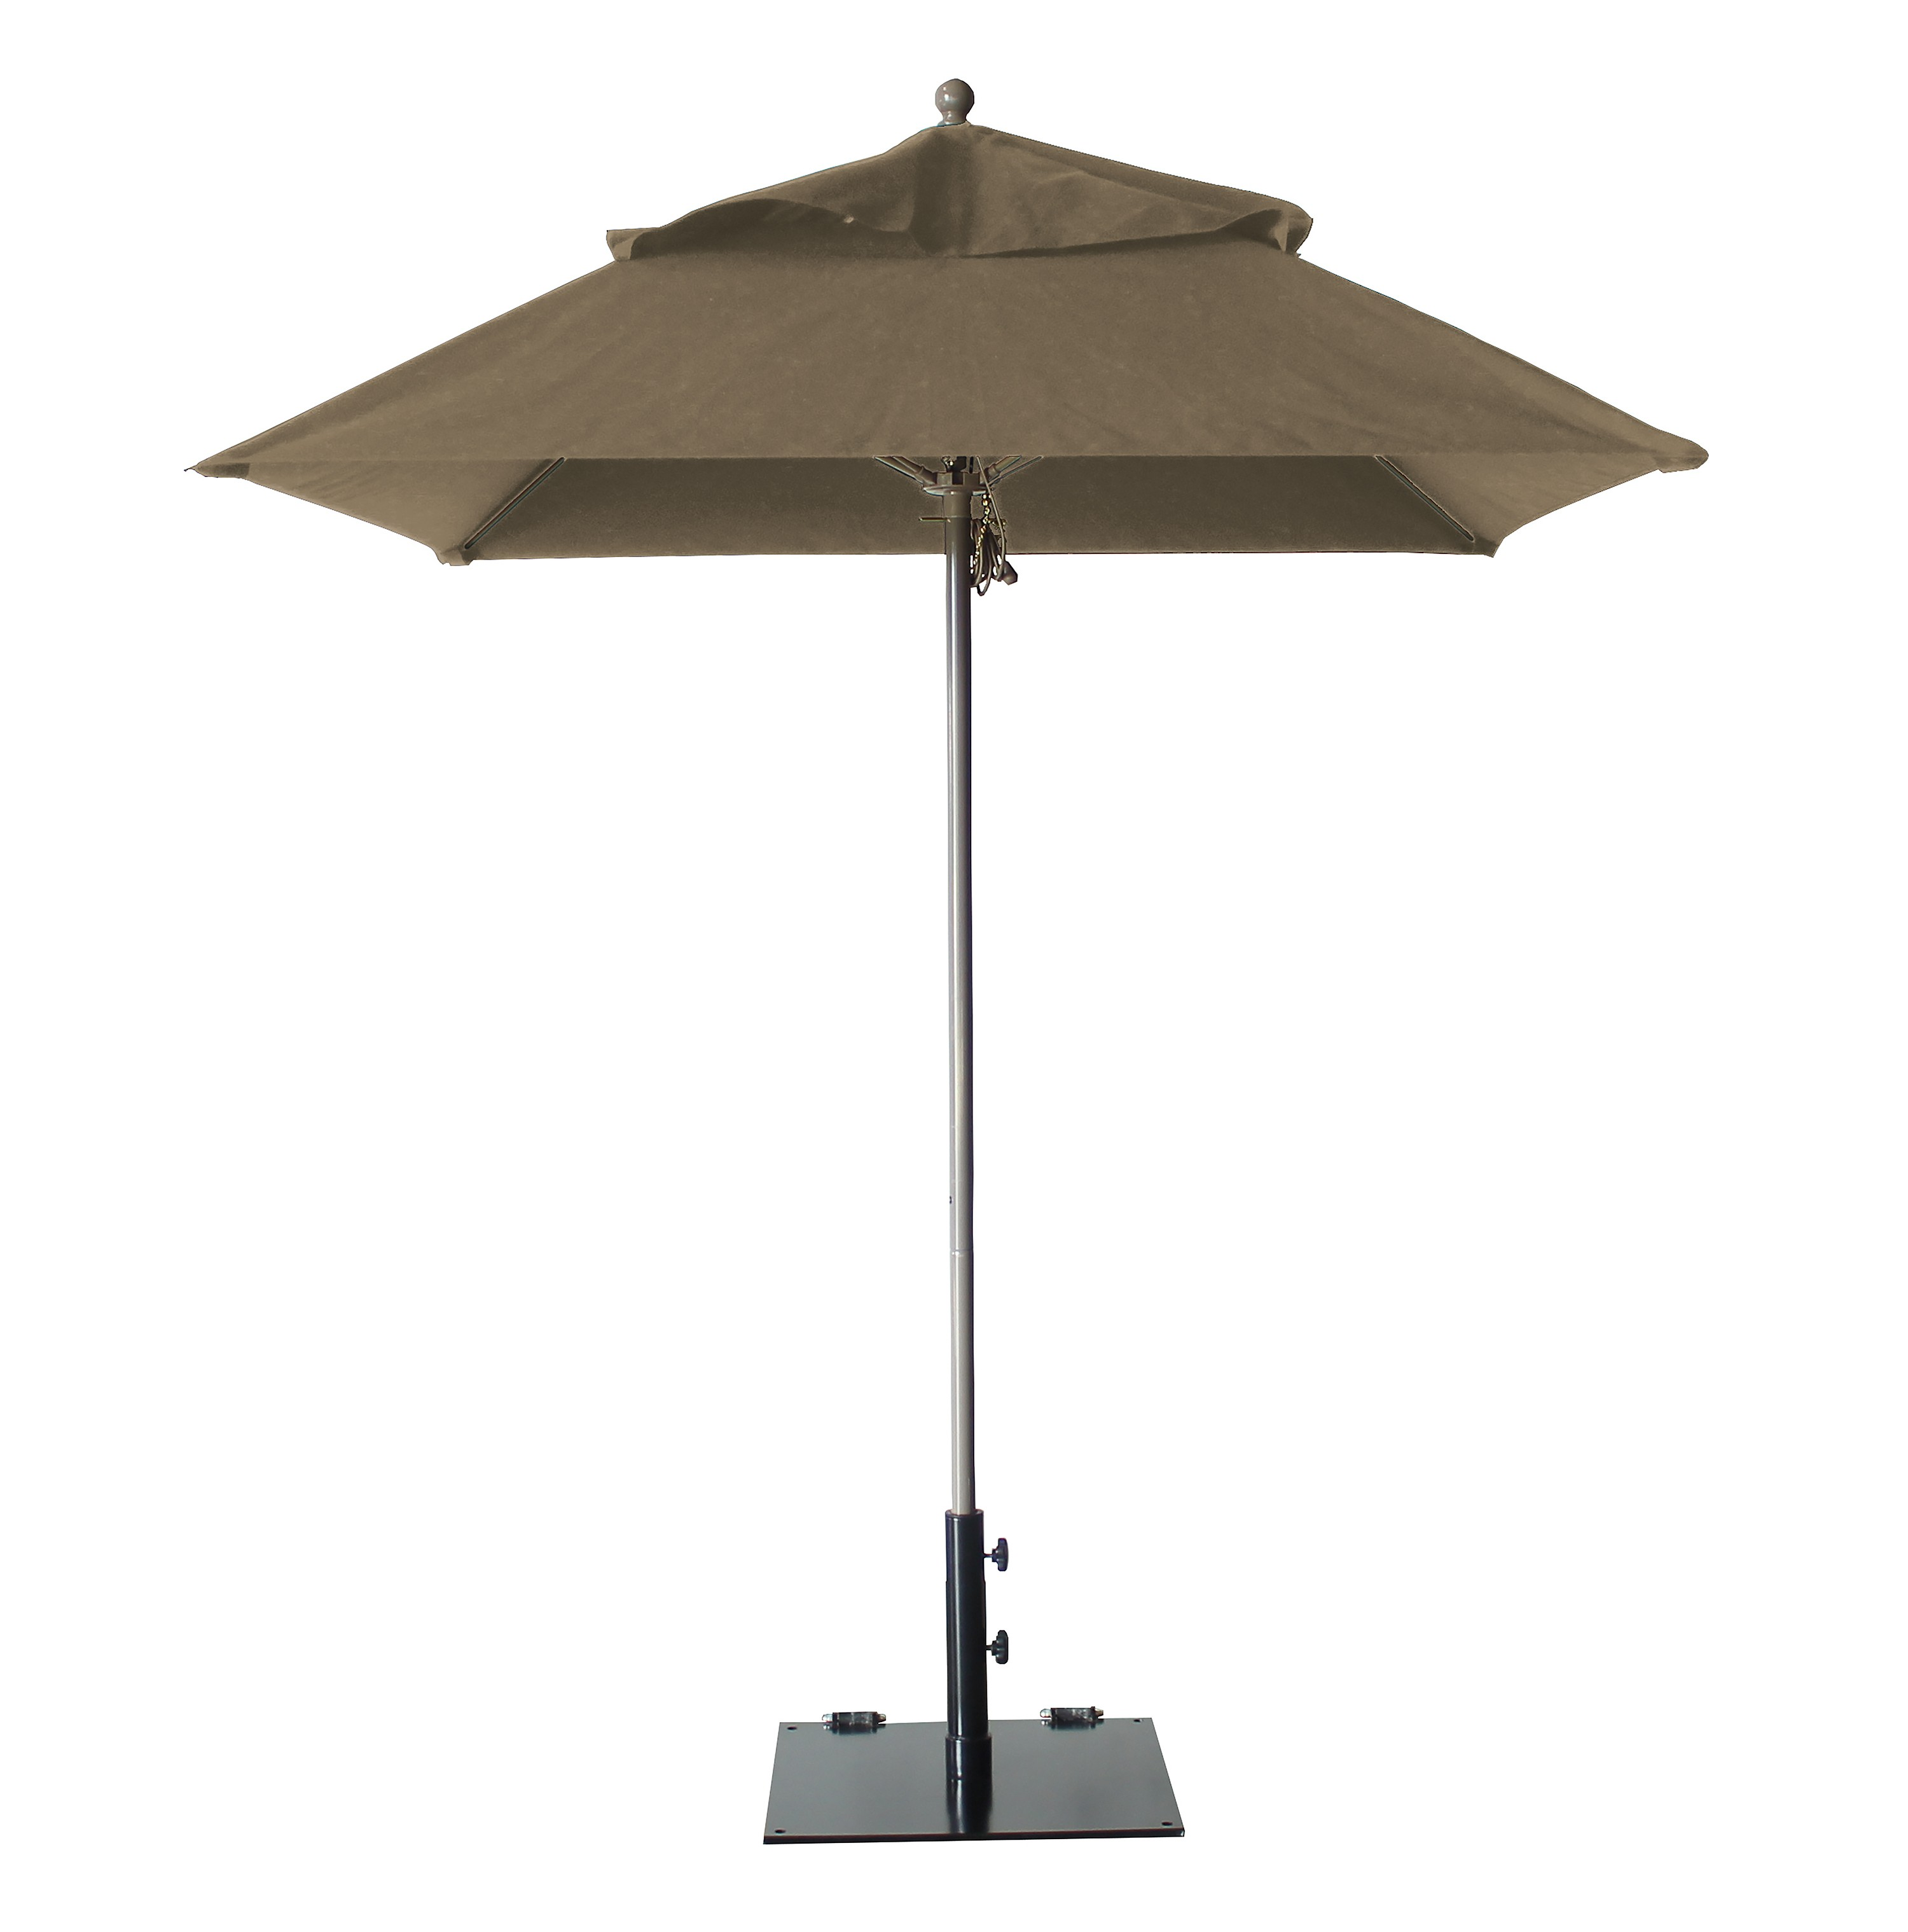 6.5 ft Square Windmaster Fiberglass Umbrella, Taupe